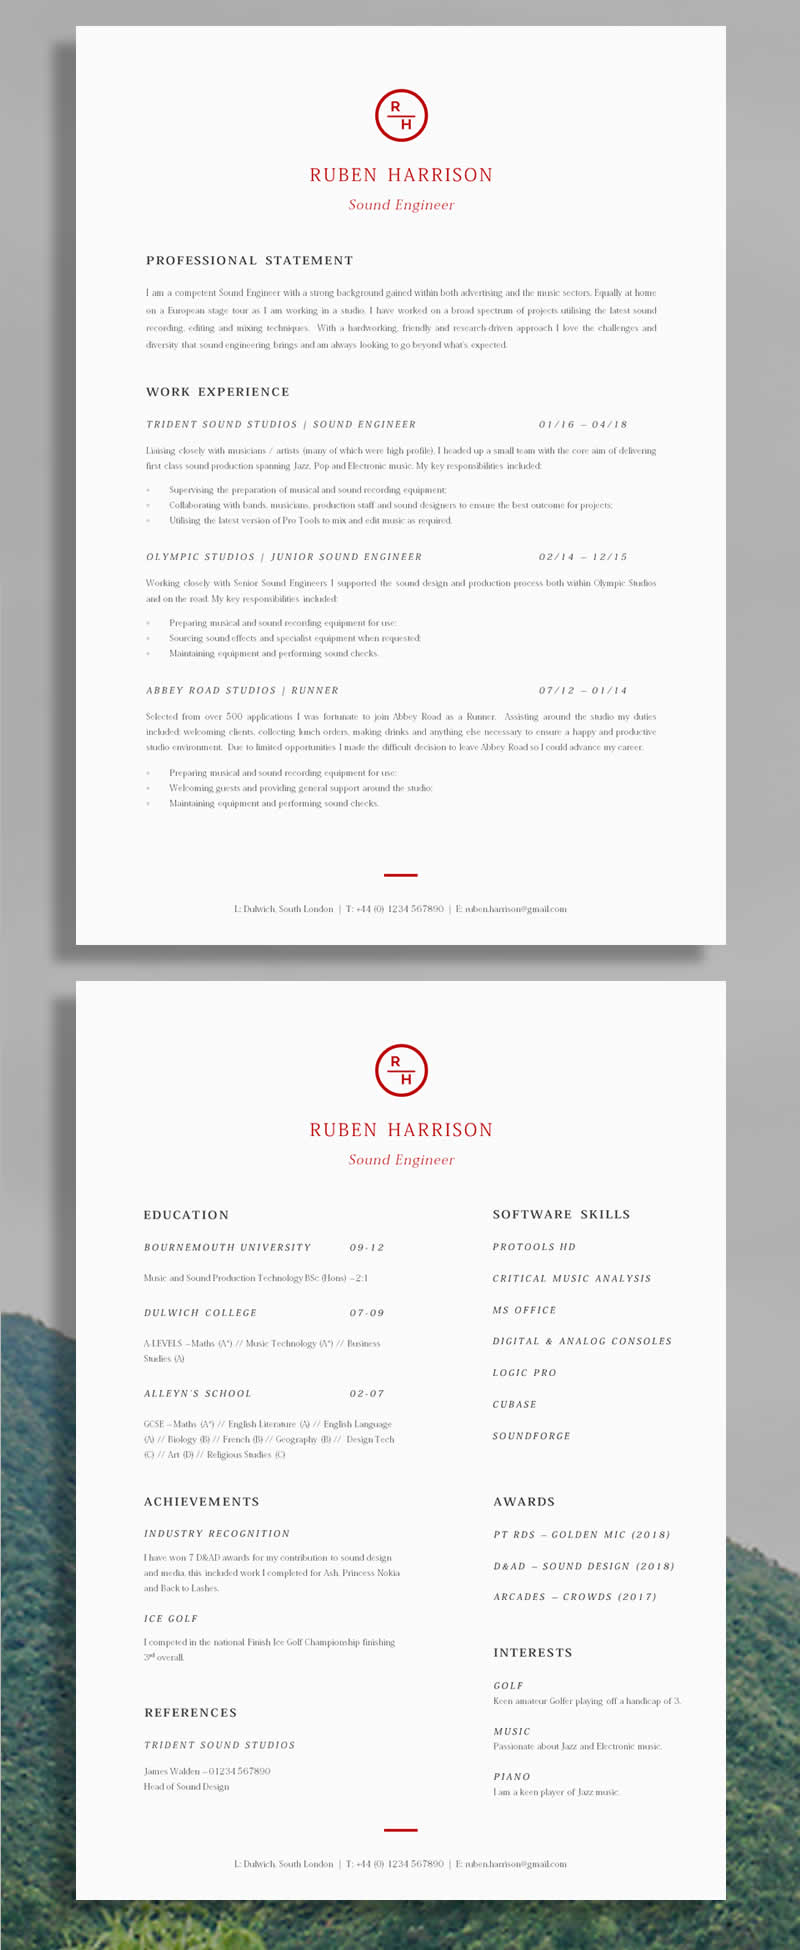 15 superb cv examples to get you noticed